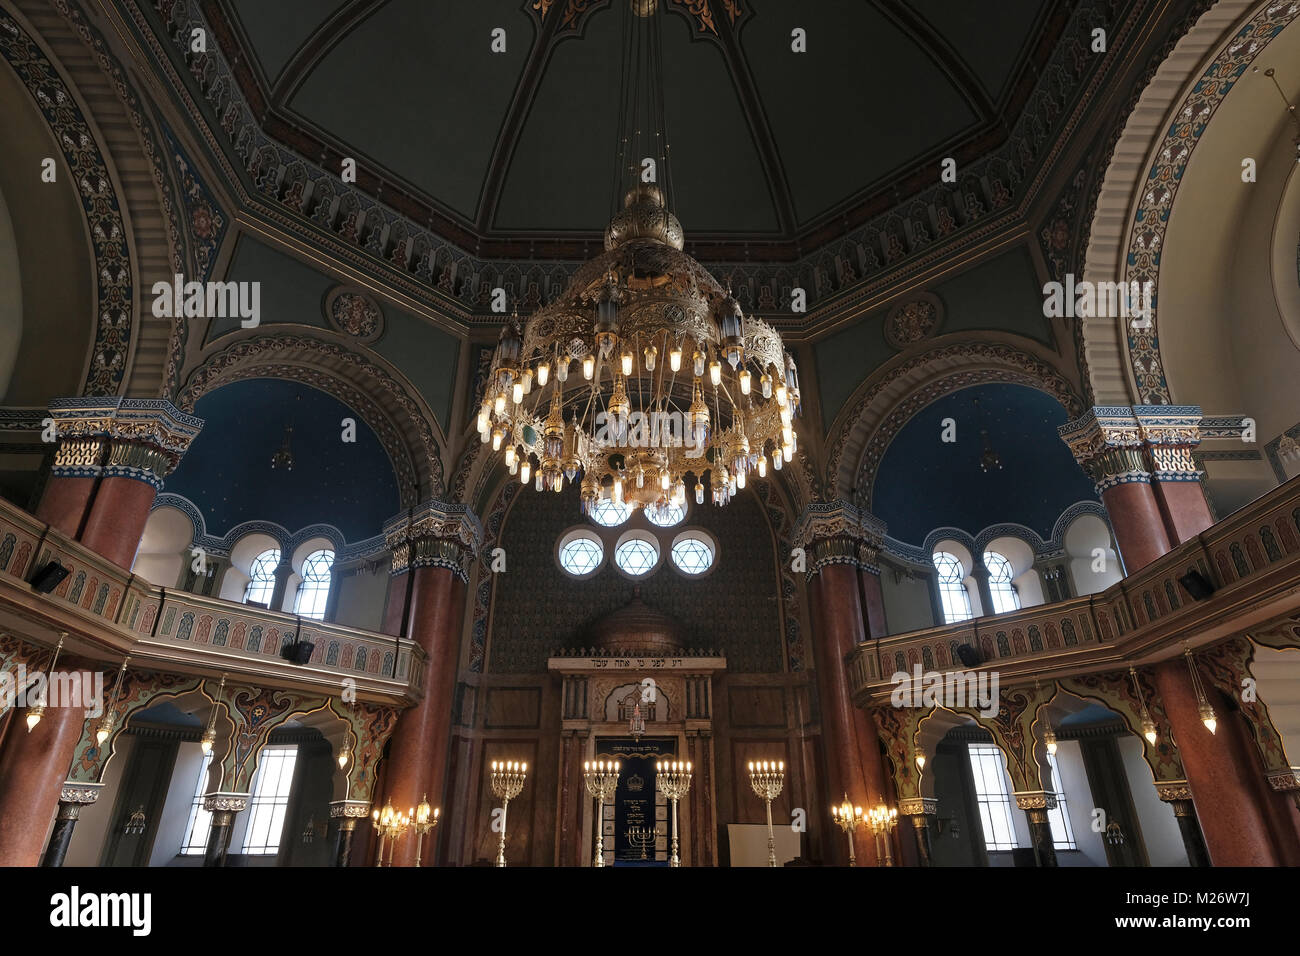 Biggest chandelier stock photos biggest chandelier stock images the biggest chandelier in the balkans inside the sofia synagogue the largest synagogue in southeastern europe aloadofball Gallery